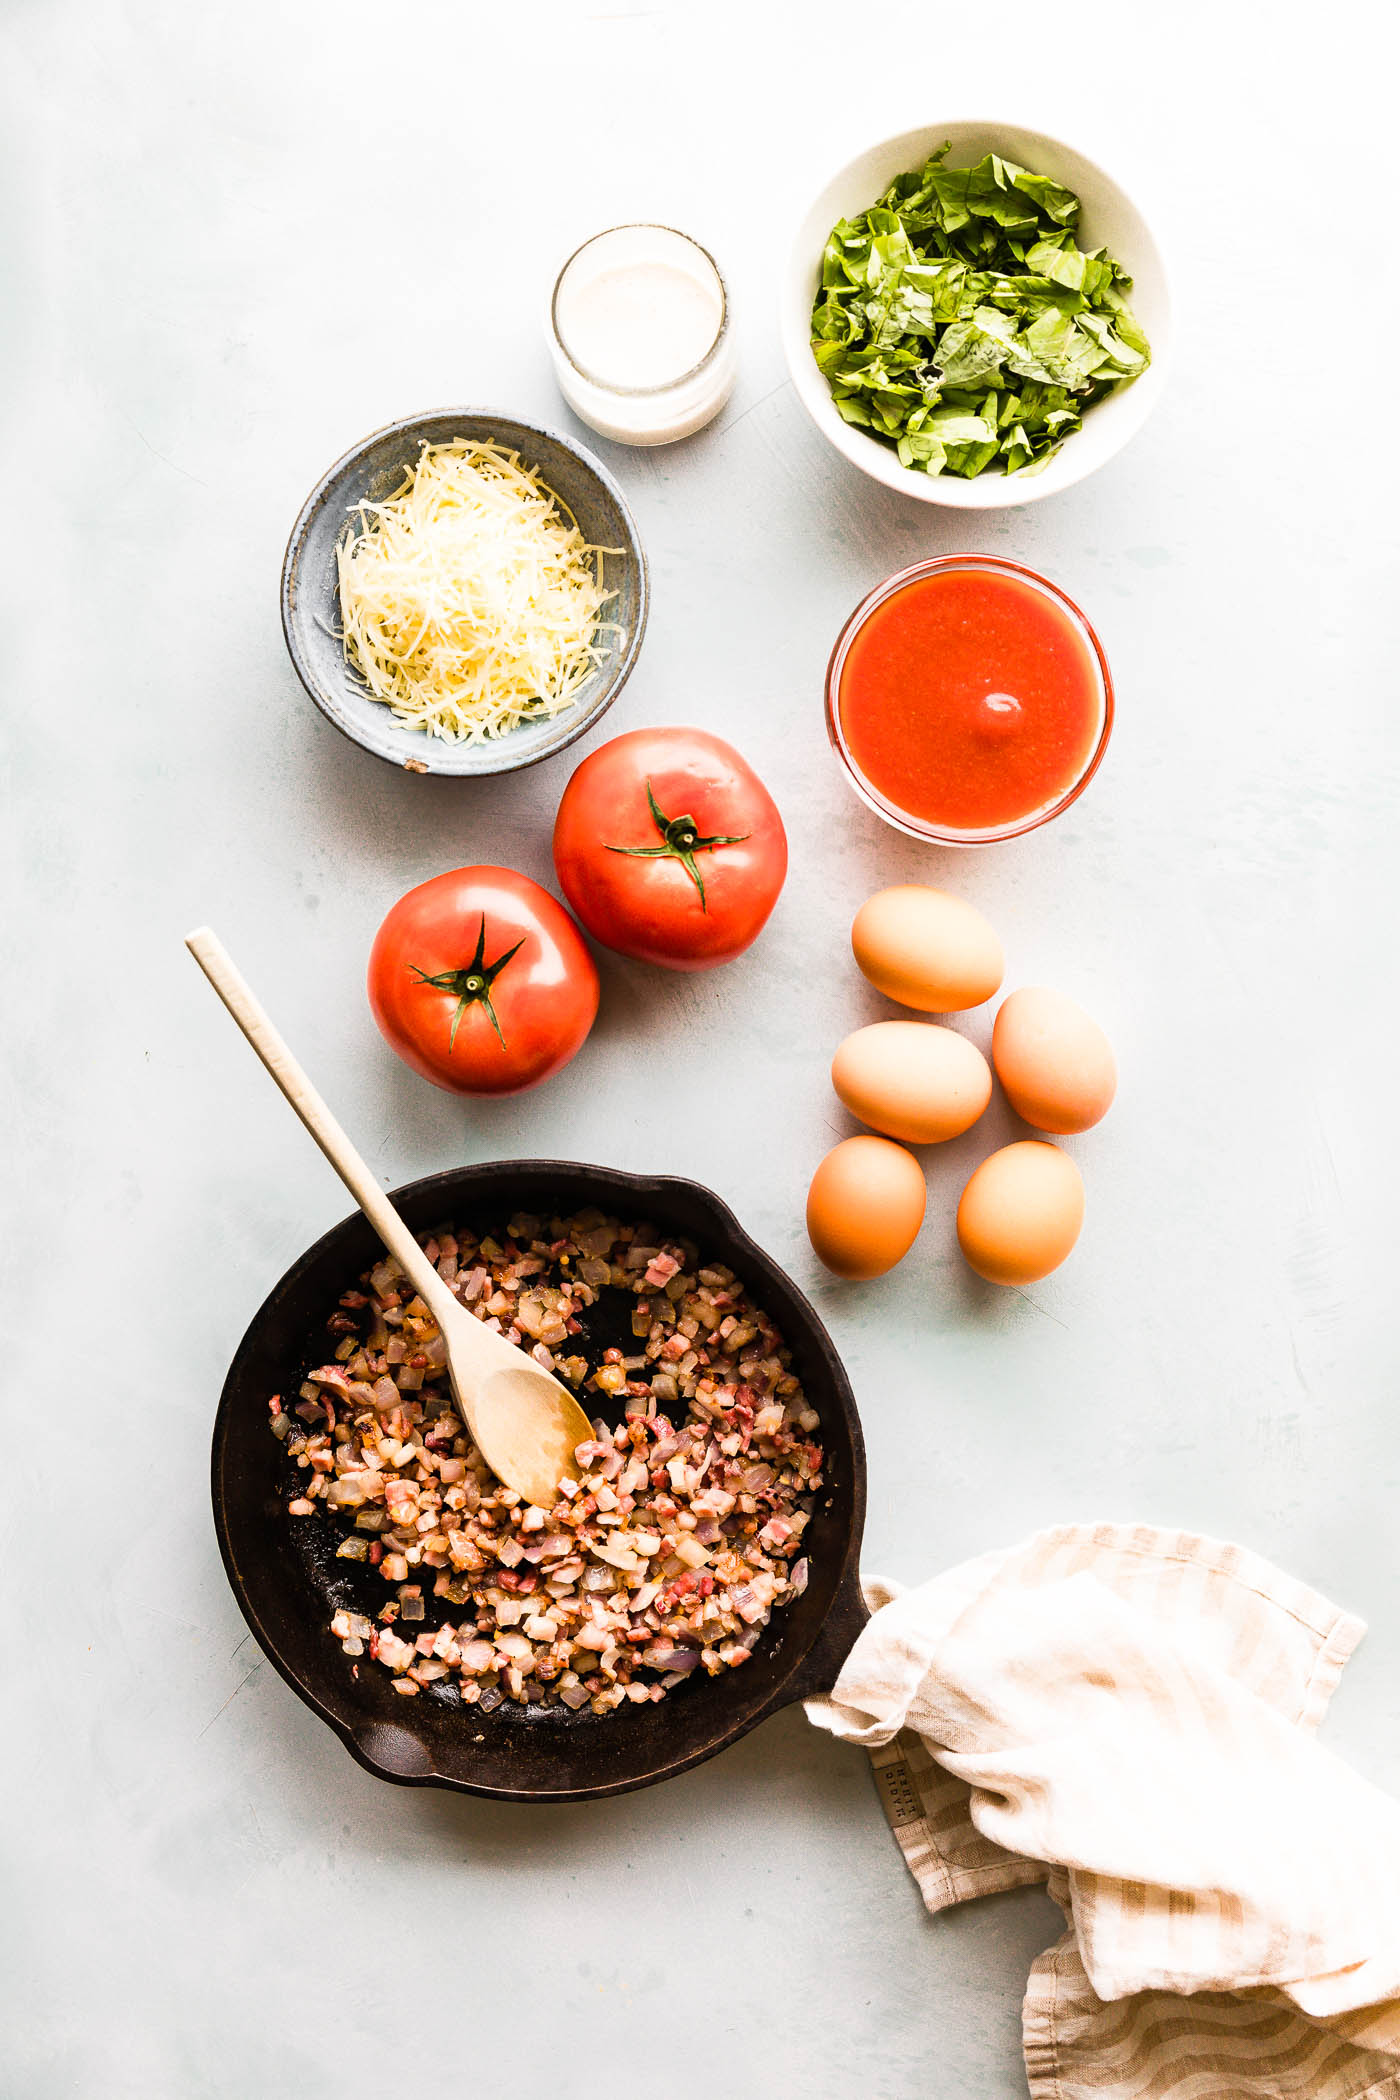 ingredients needed to make an Italian egg bake recipe. Shown: farm fresh eggs, fresh tomatoes, unsweetened almond milk, Parmesan cheese, tomato sauce, fresh herbs all surrounding nitrate free pancetta cooking in a cast iron skillet